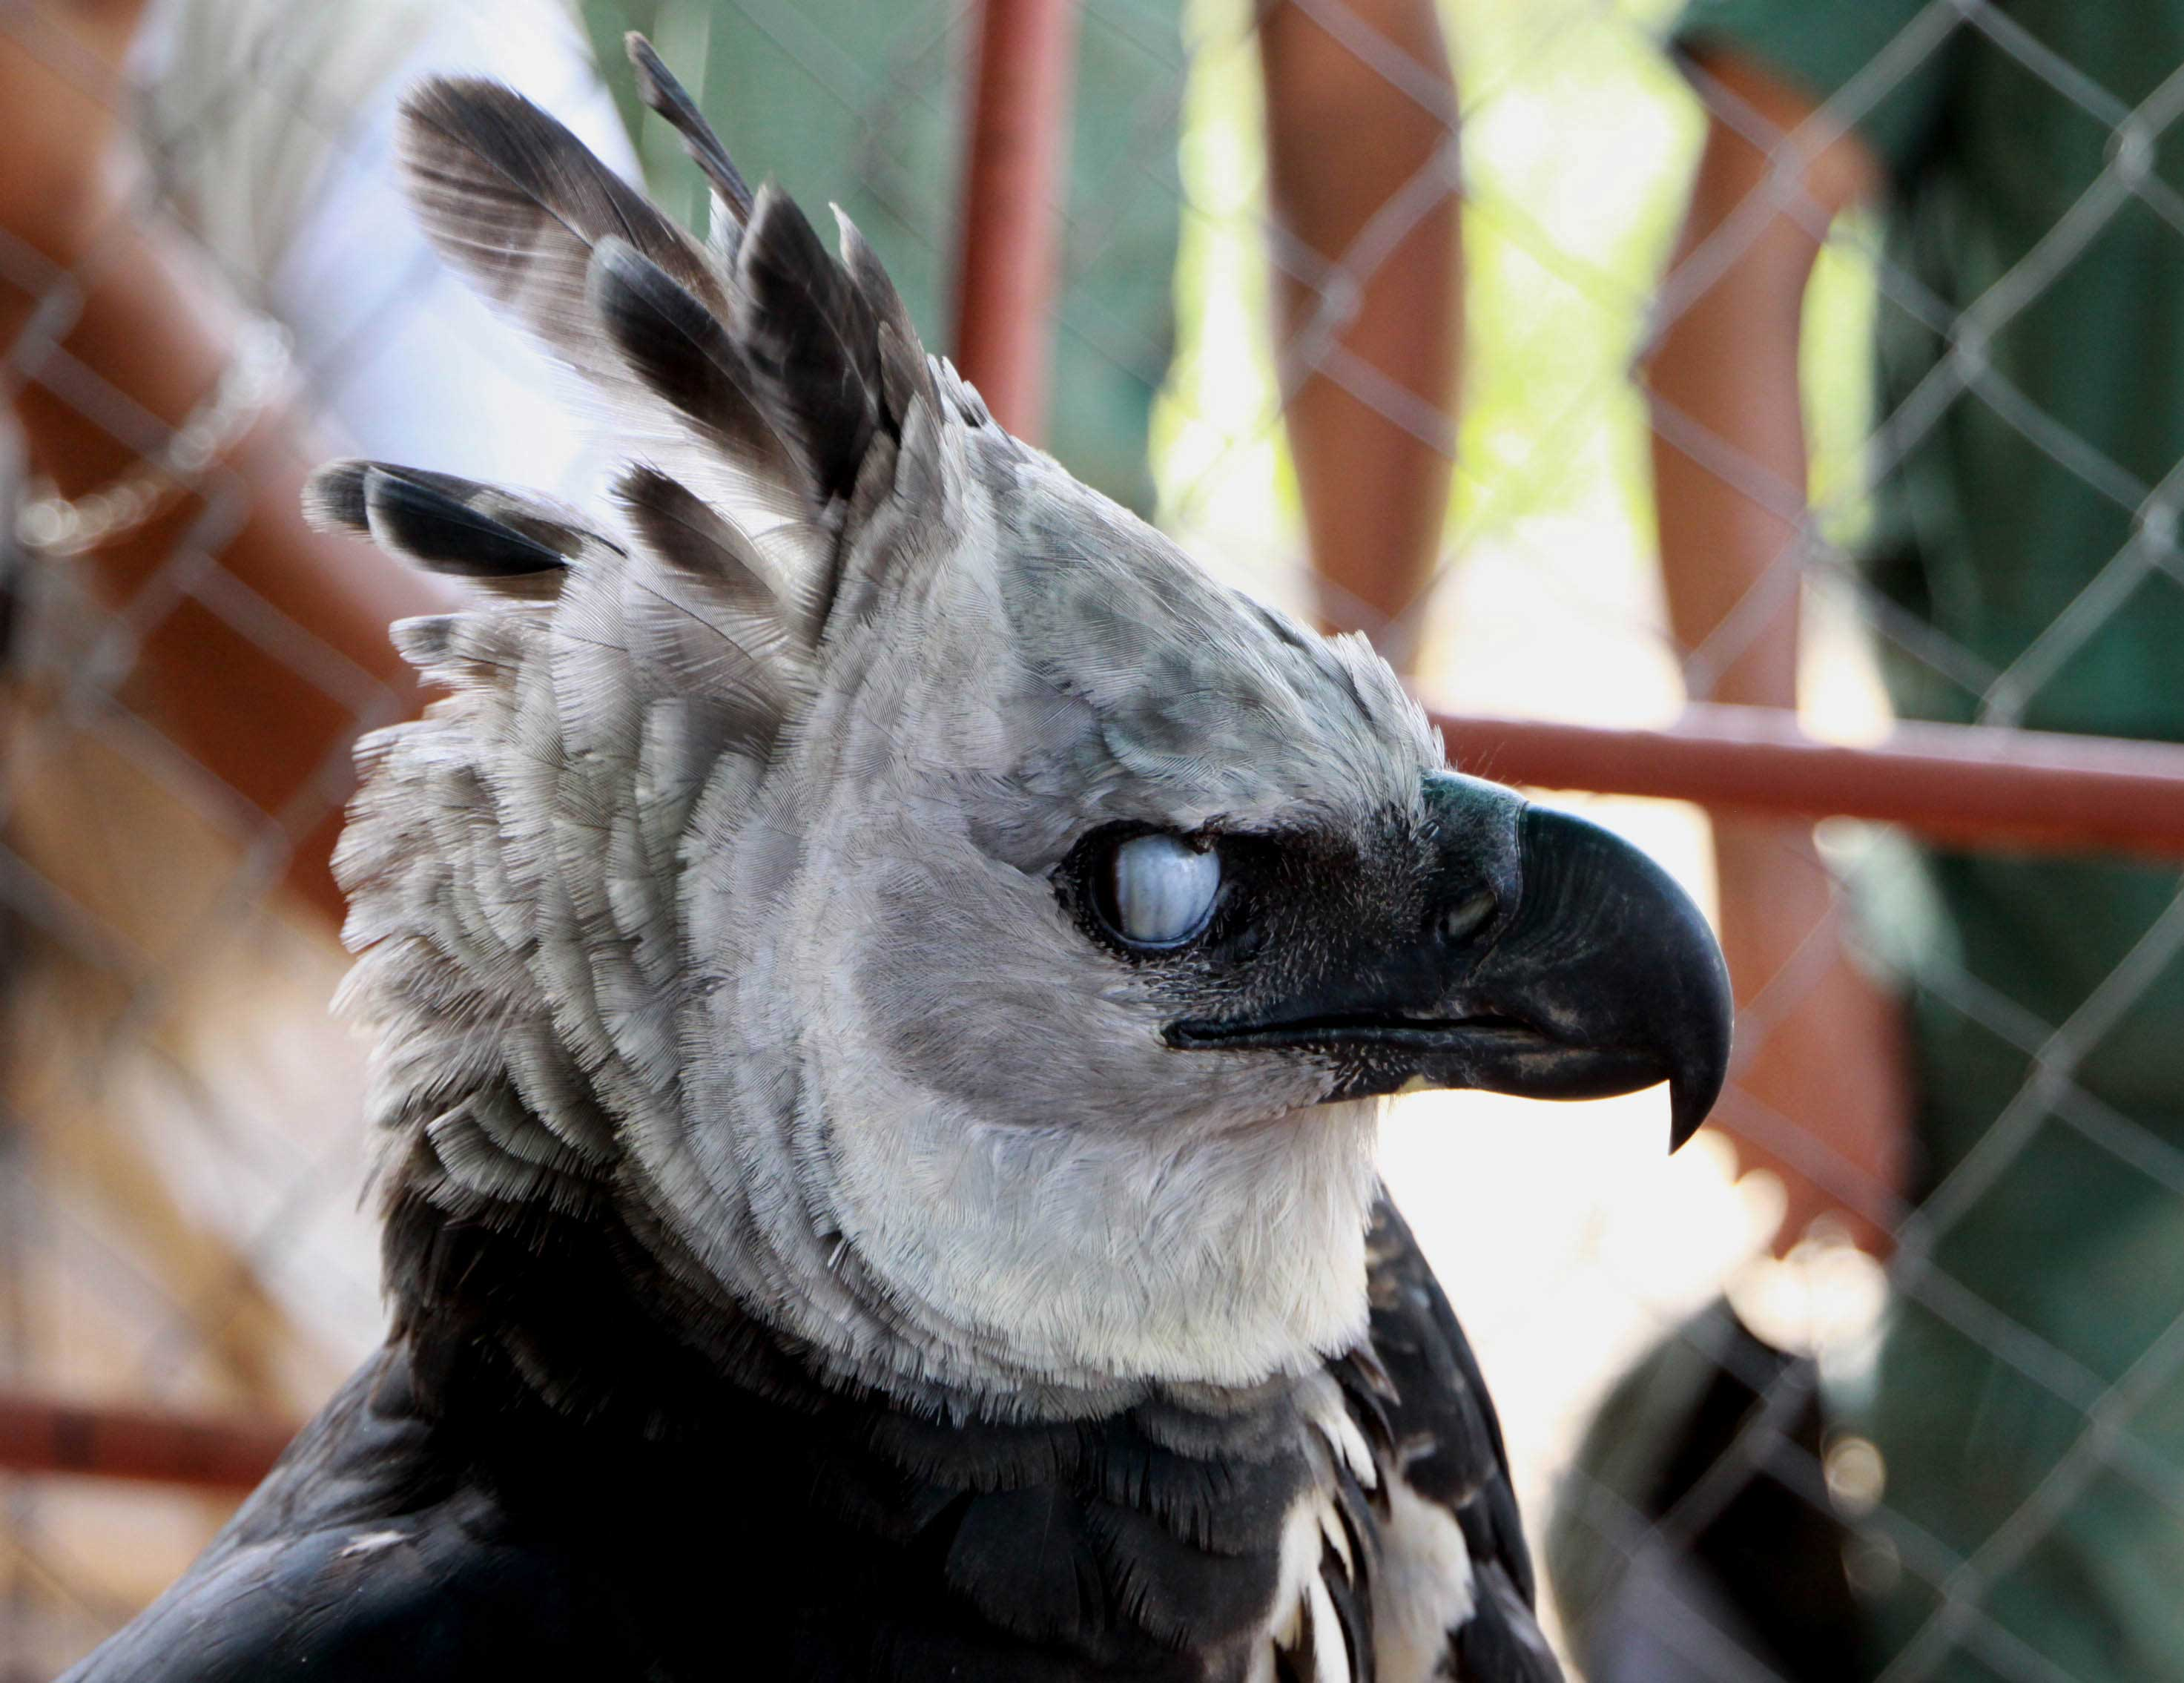 Hd wallpaper eagle - 4 Harpy Eagle Hd Wallpapers Backgrounds Wallpaper Abyss